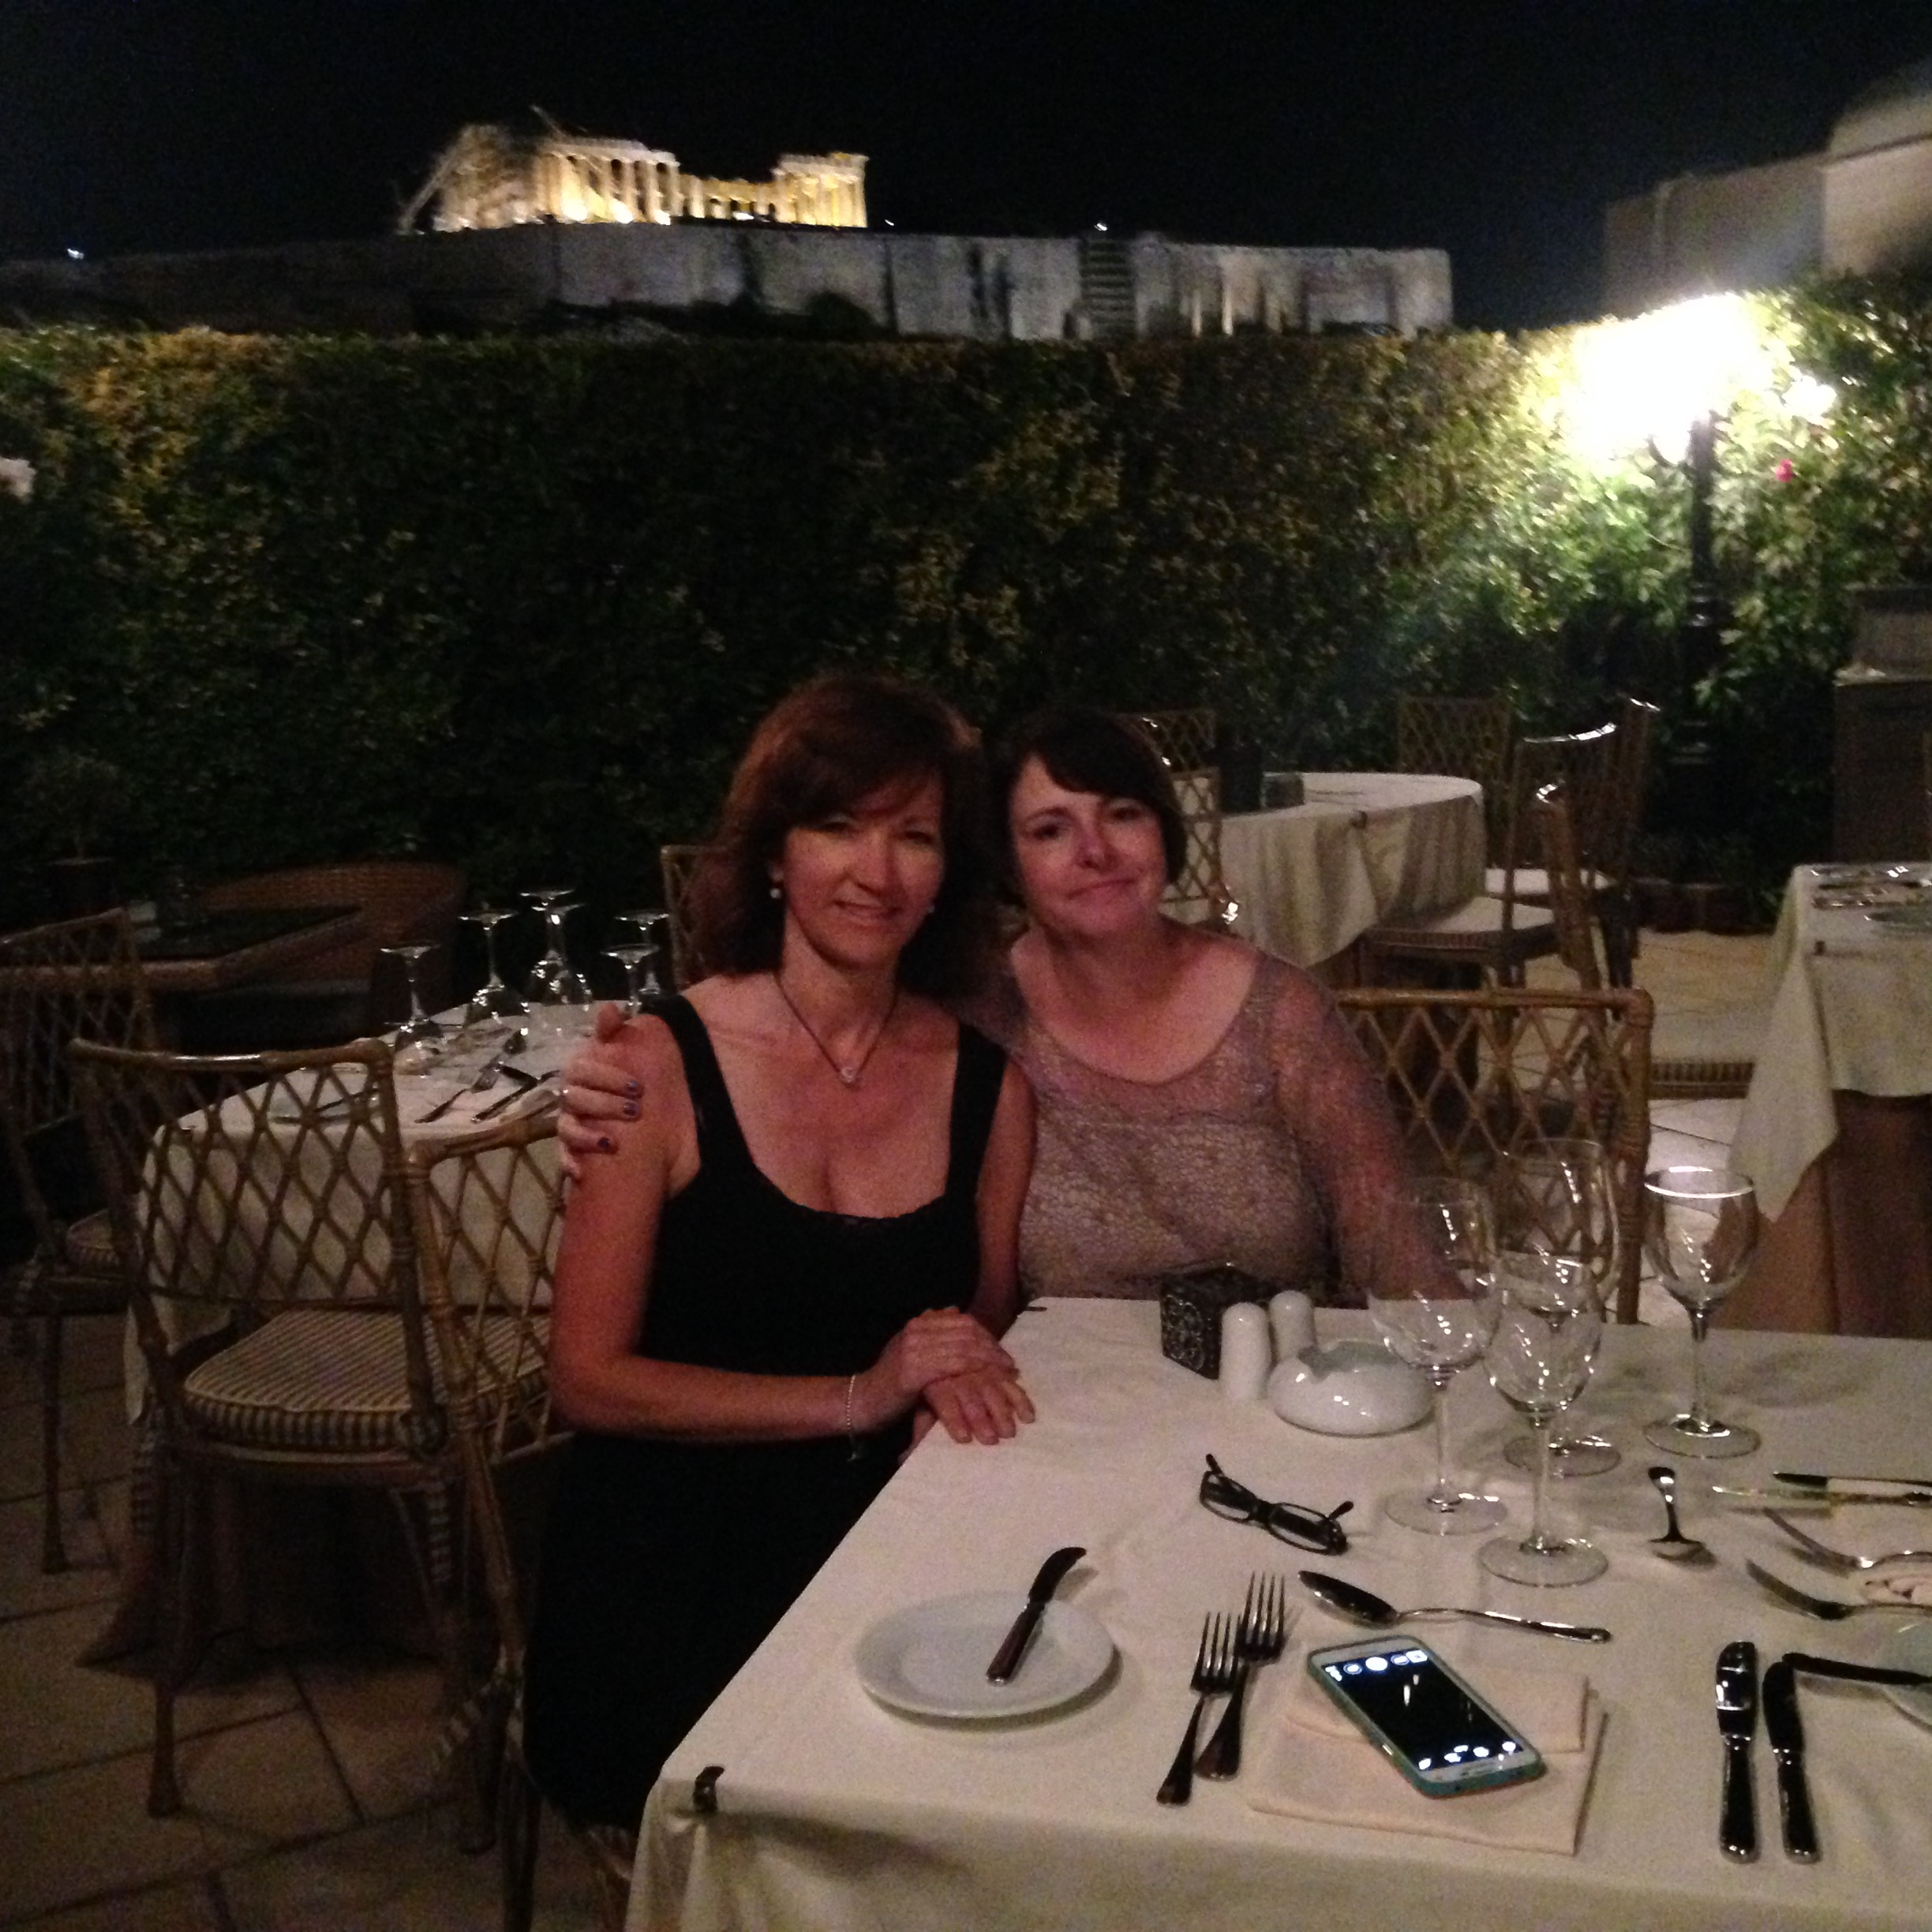 Shortly after checking in to our hotel in Athens. This is the rooftop terrace at our hotel. We were not prepared for the iconic view or being able able to hear the concert performing at the Herodes Atticus open air theatre, outside the Acropolis.